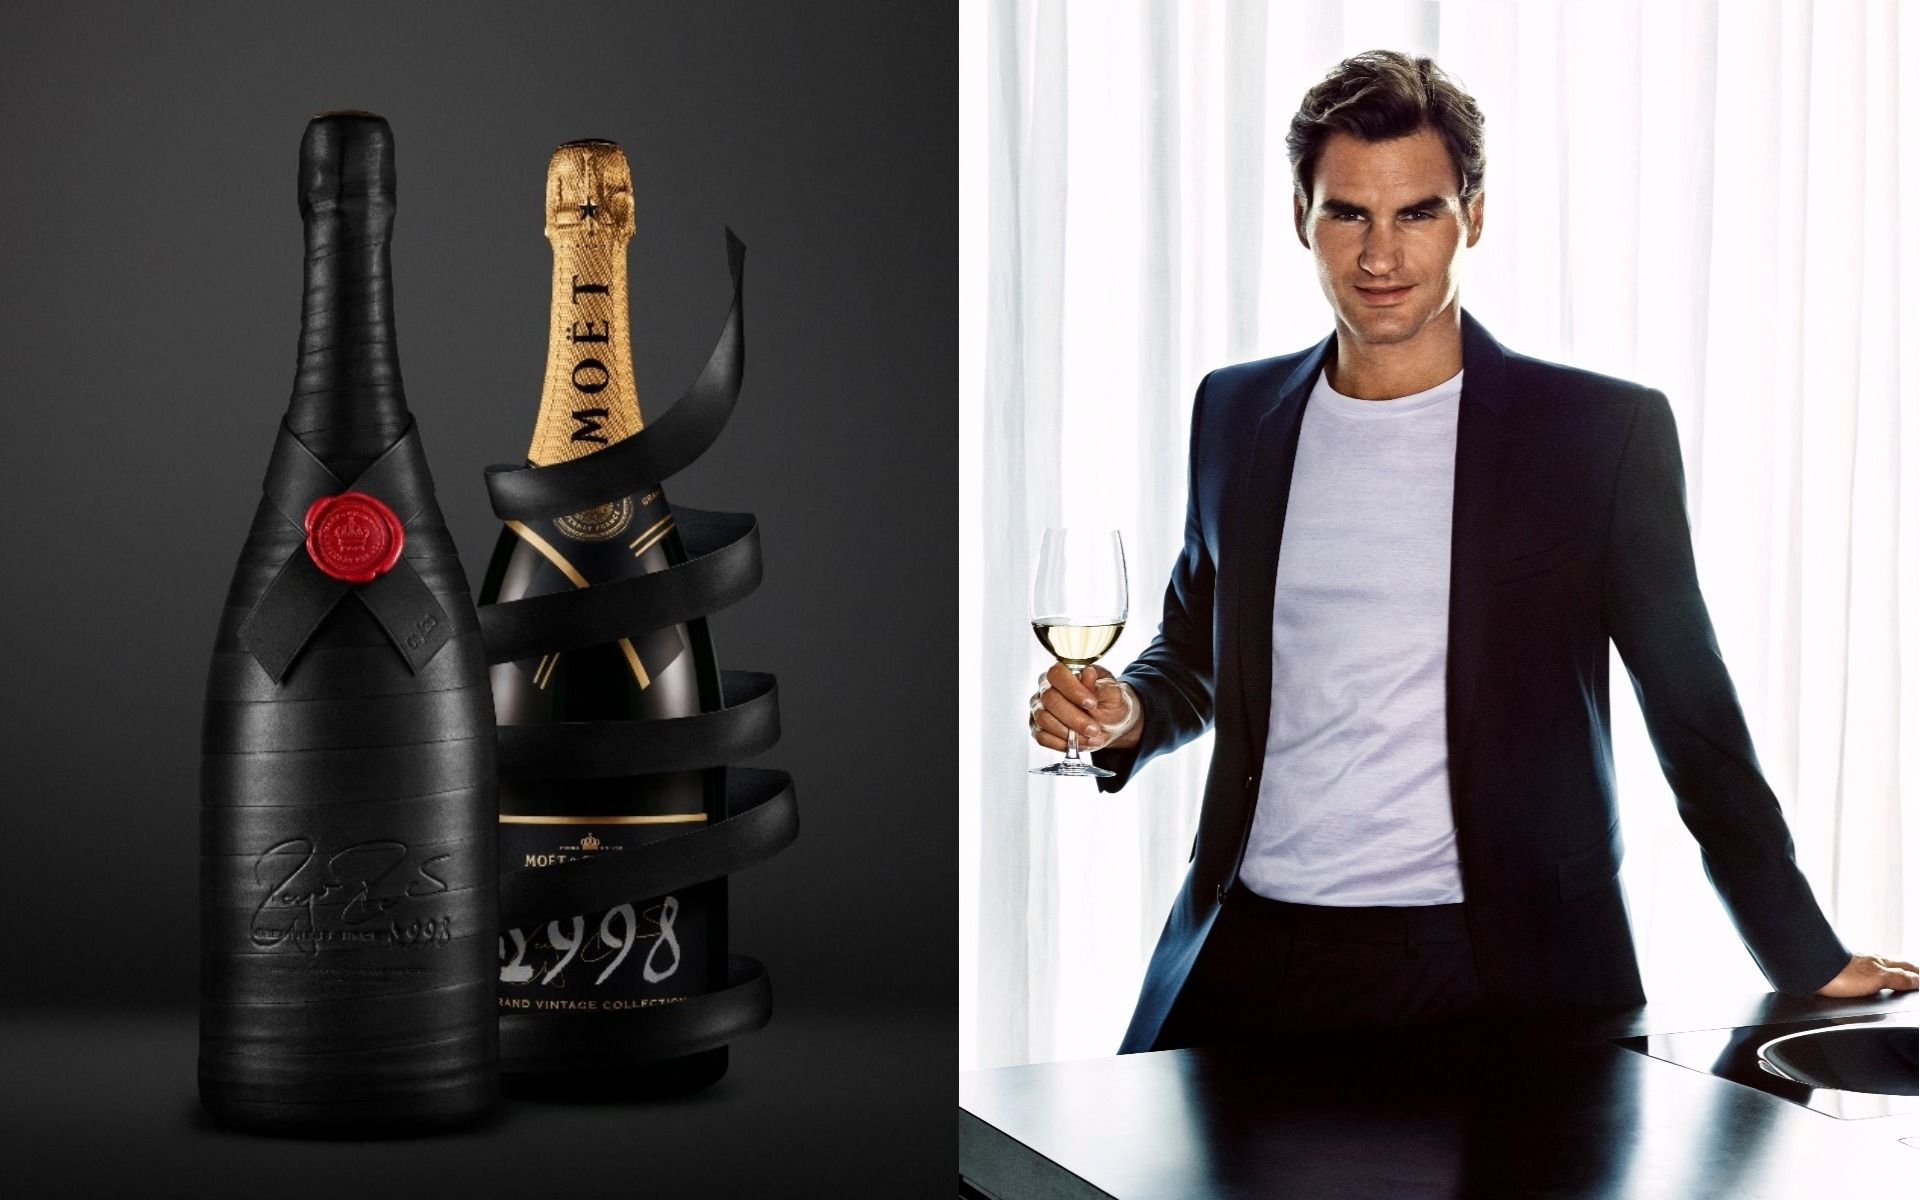 This Special Edition Moët & Chandon Champagne Celebrates Roger Federer's Legendary Tennis Career